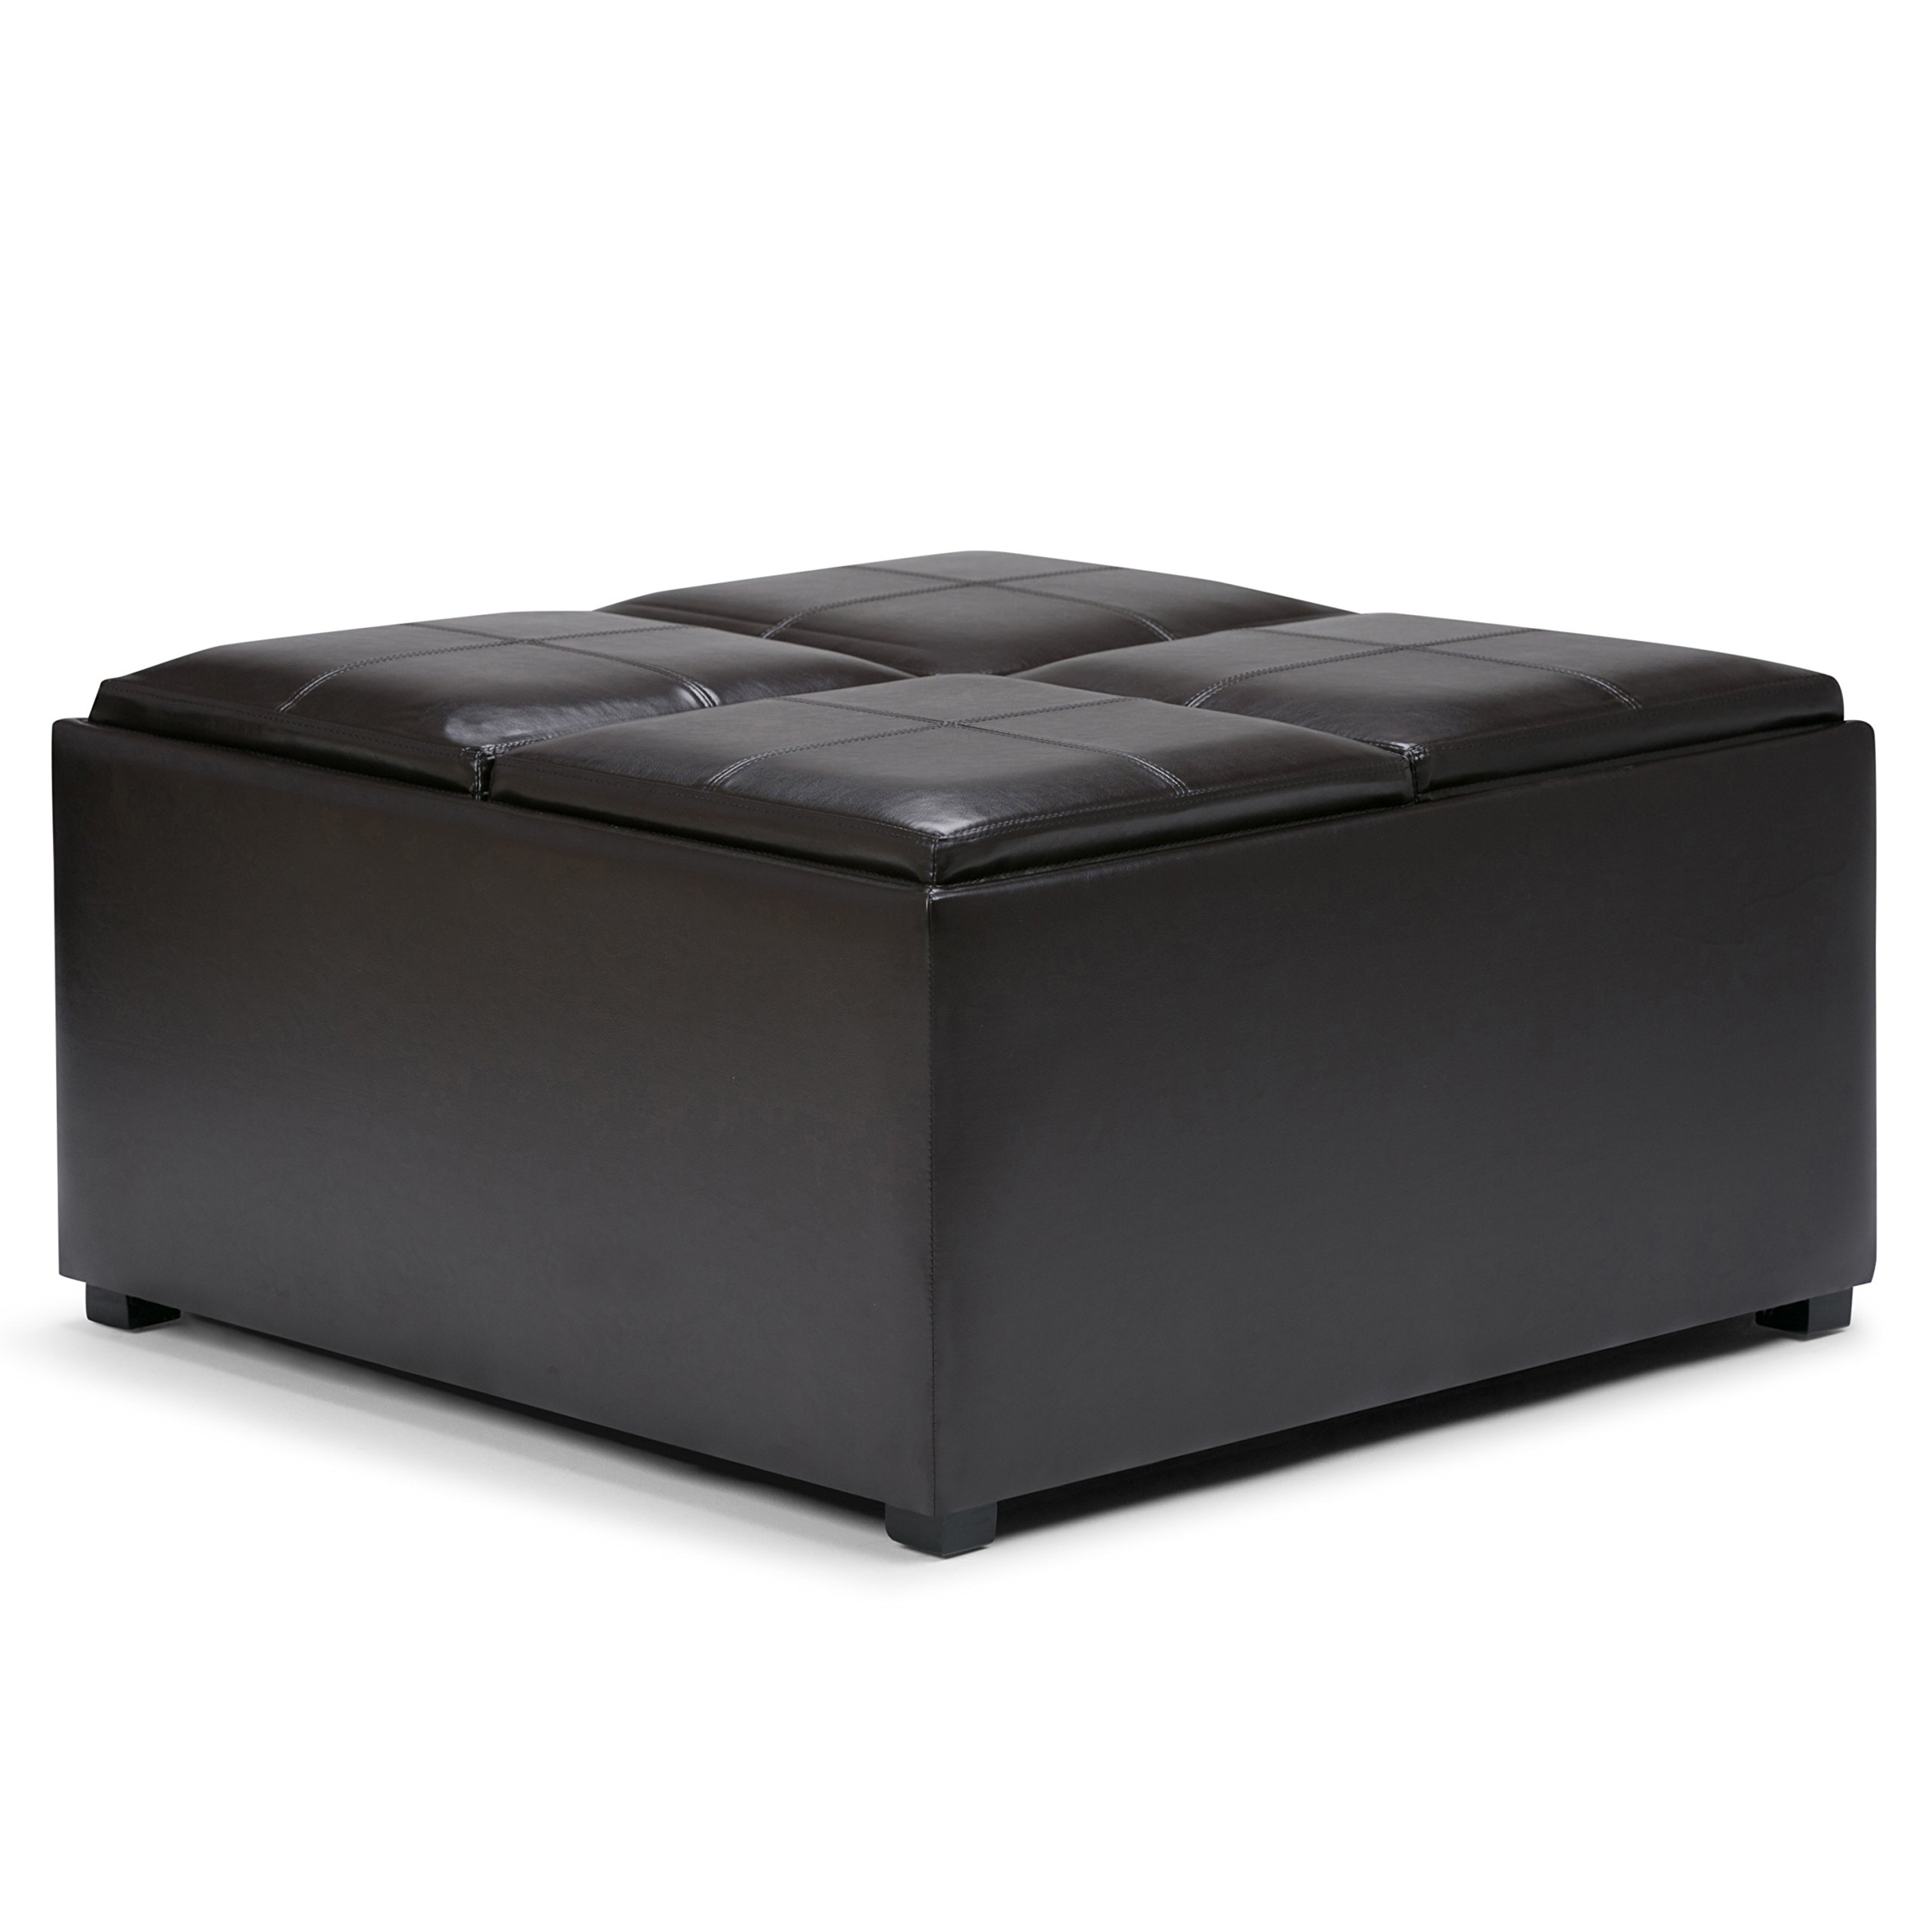 Simpli Home F-07 Avalon 35 inch Wide Contemporary Square Storage Ottoman in Tanners Brown Faux Leather by Simpli Home